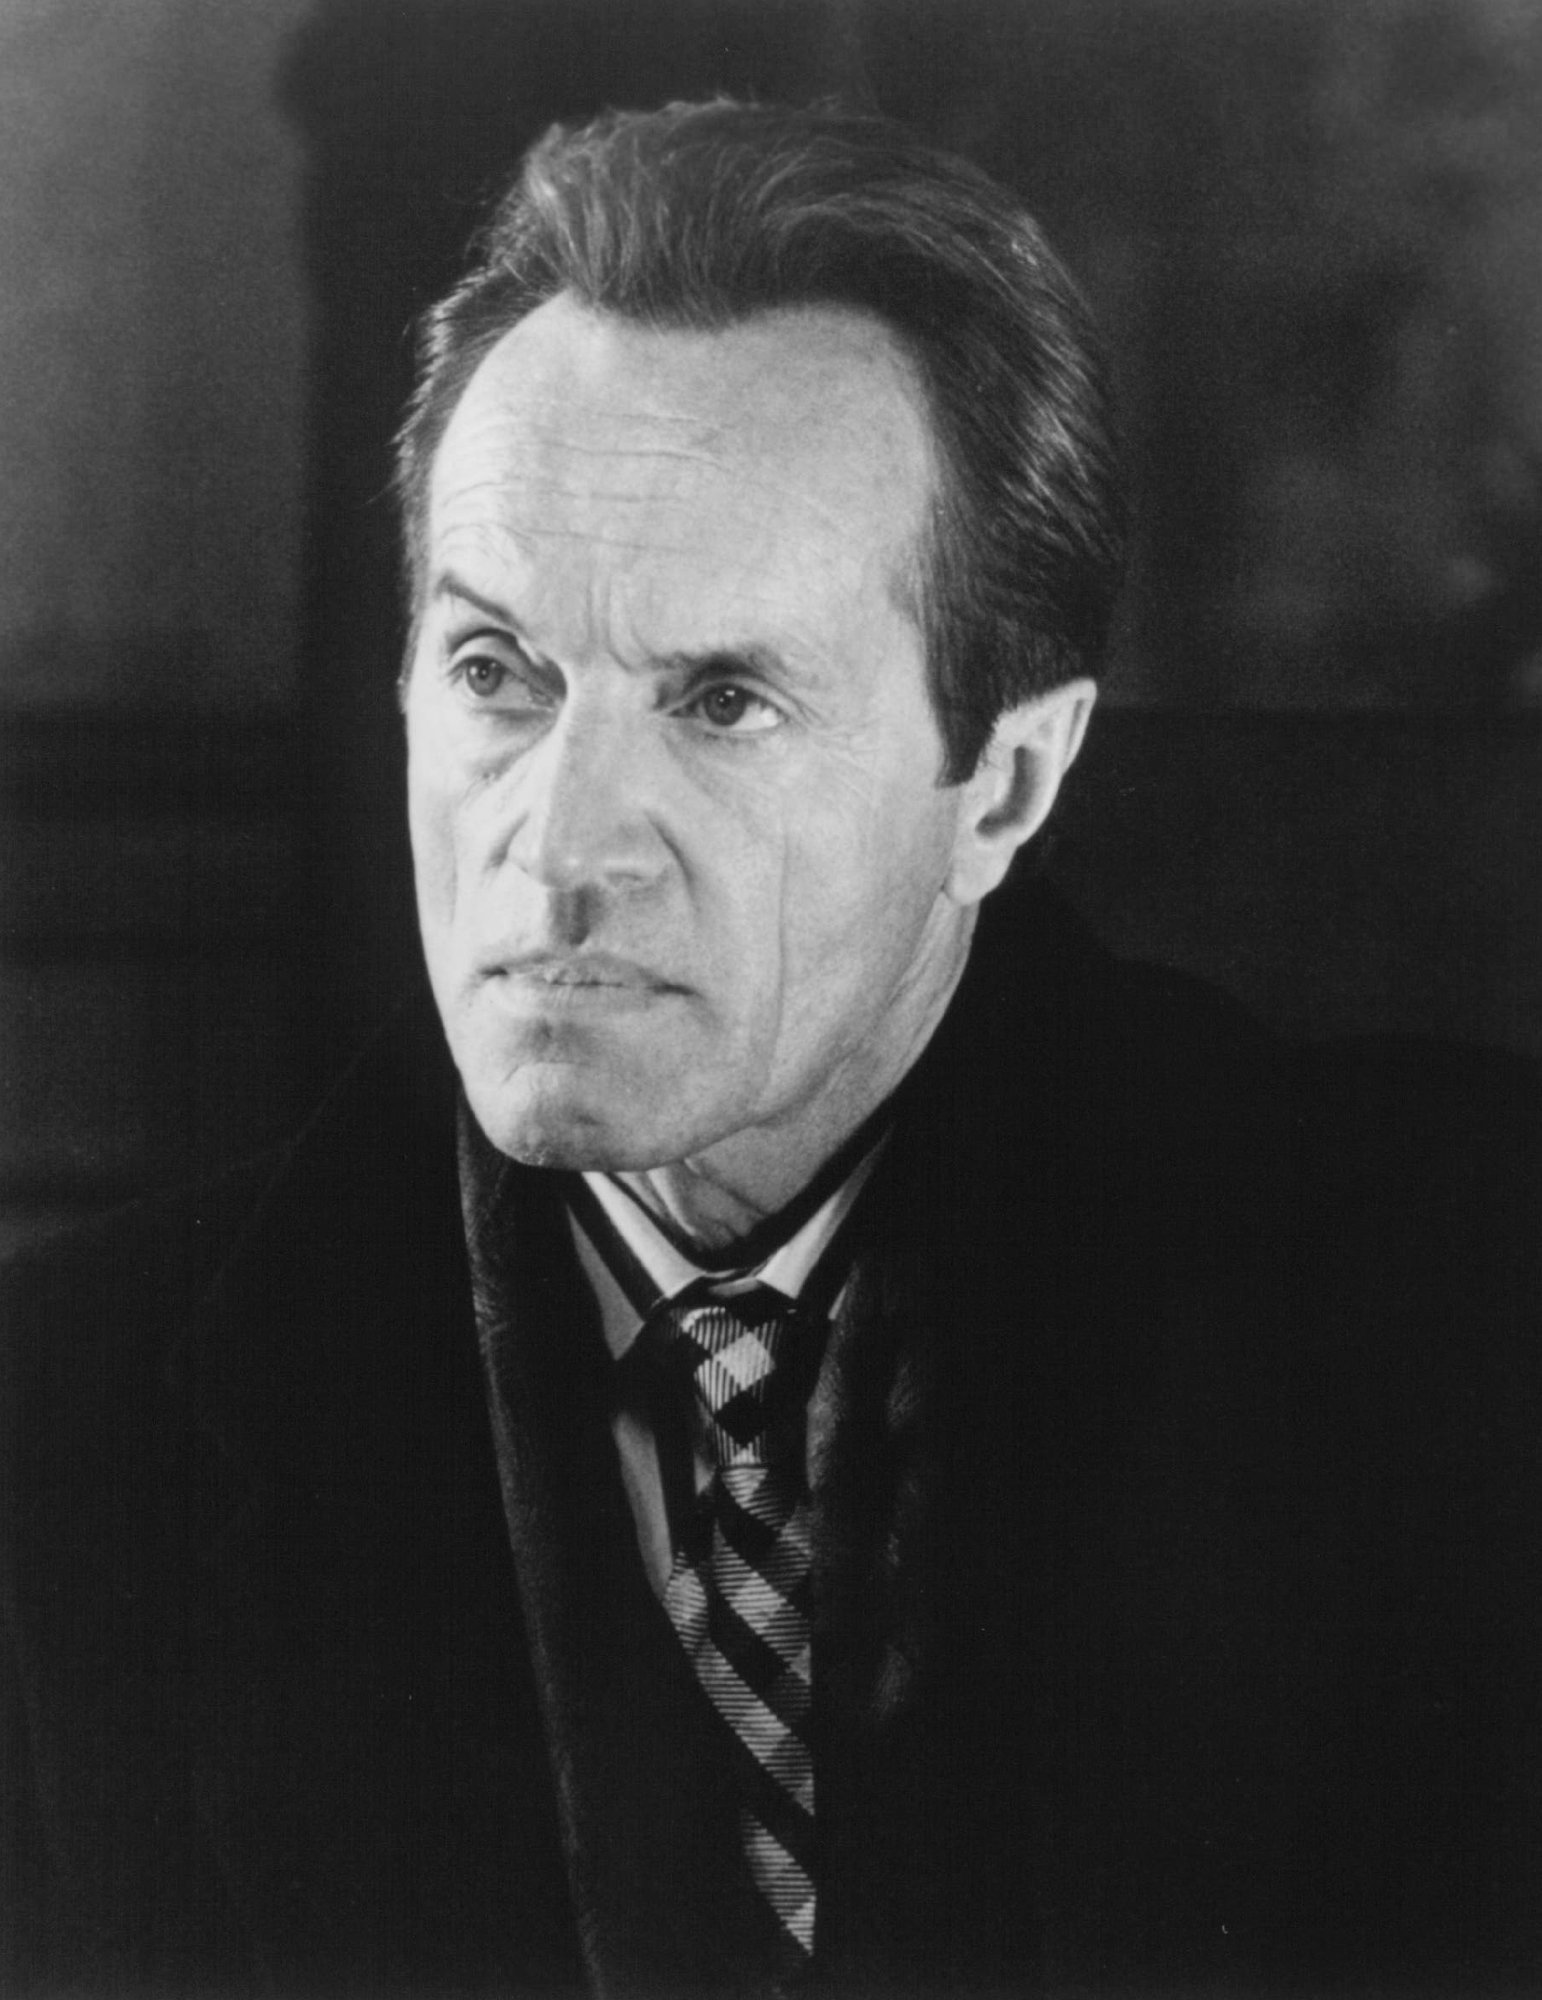 download movies with lance henriksen films filmography